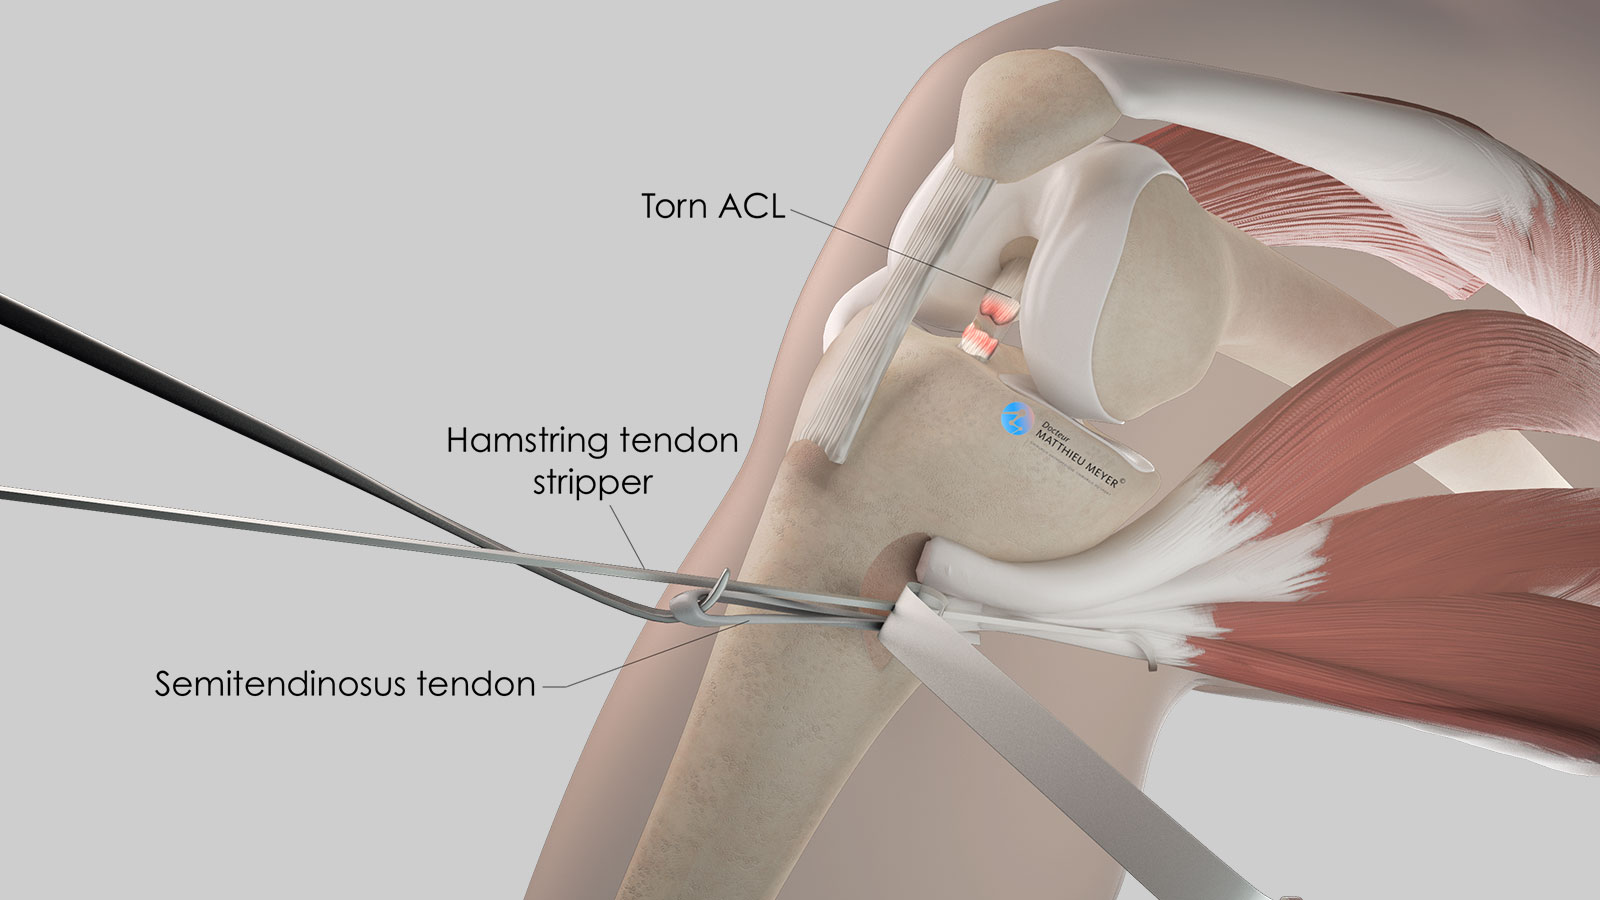 Harvest of the semitendinosus tendon with a stripper